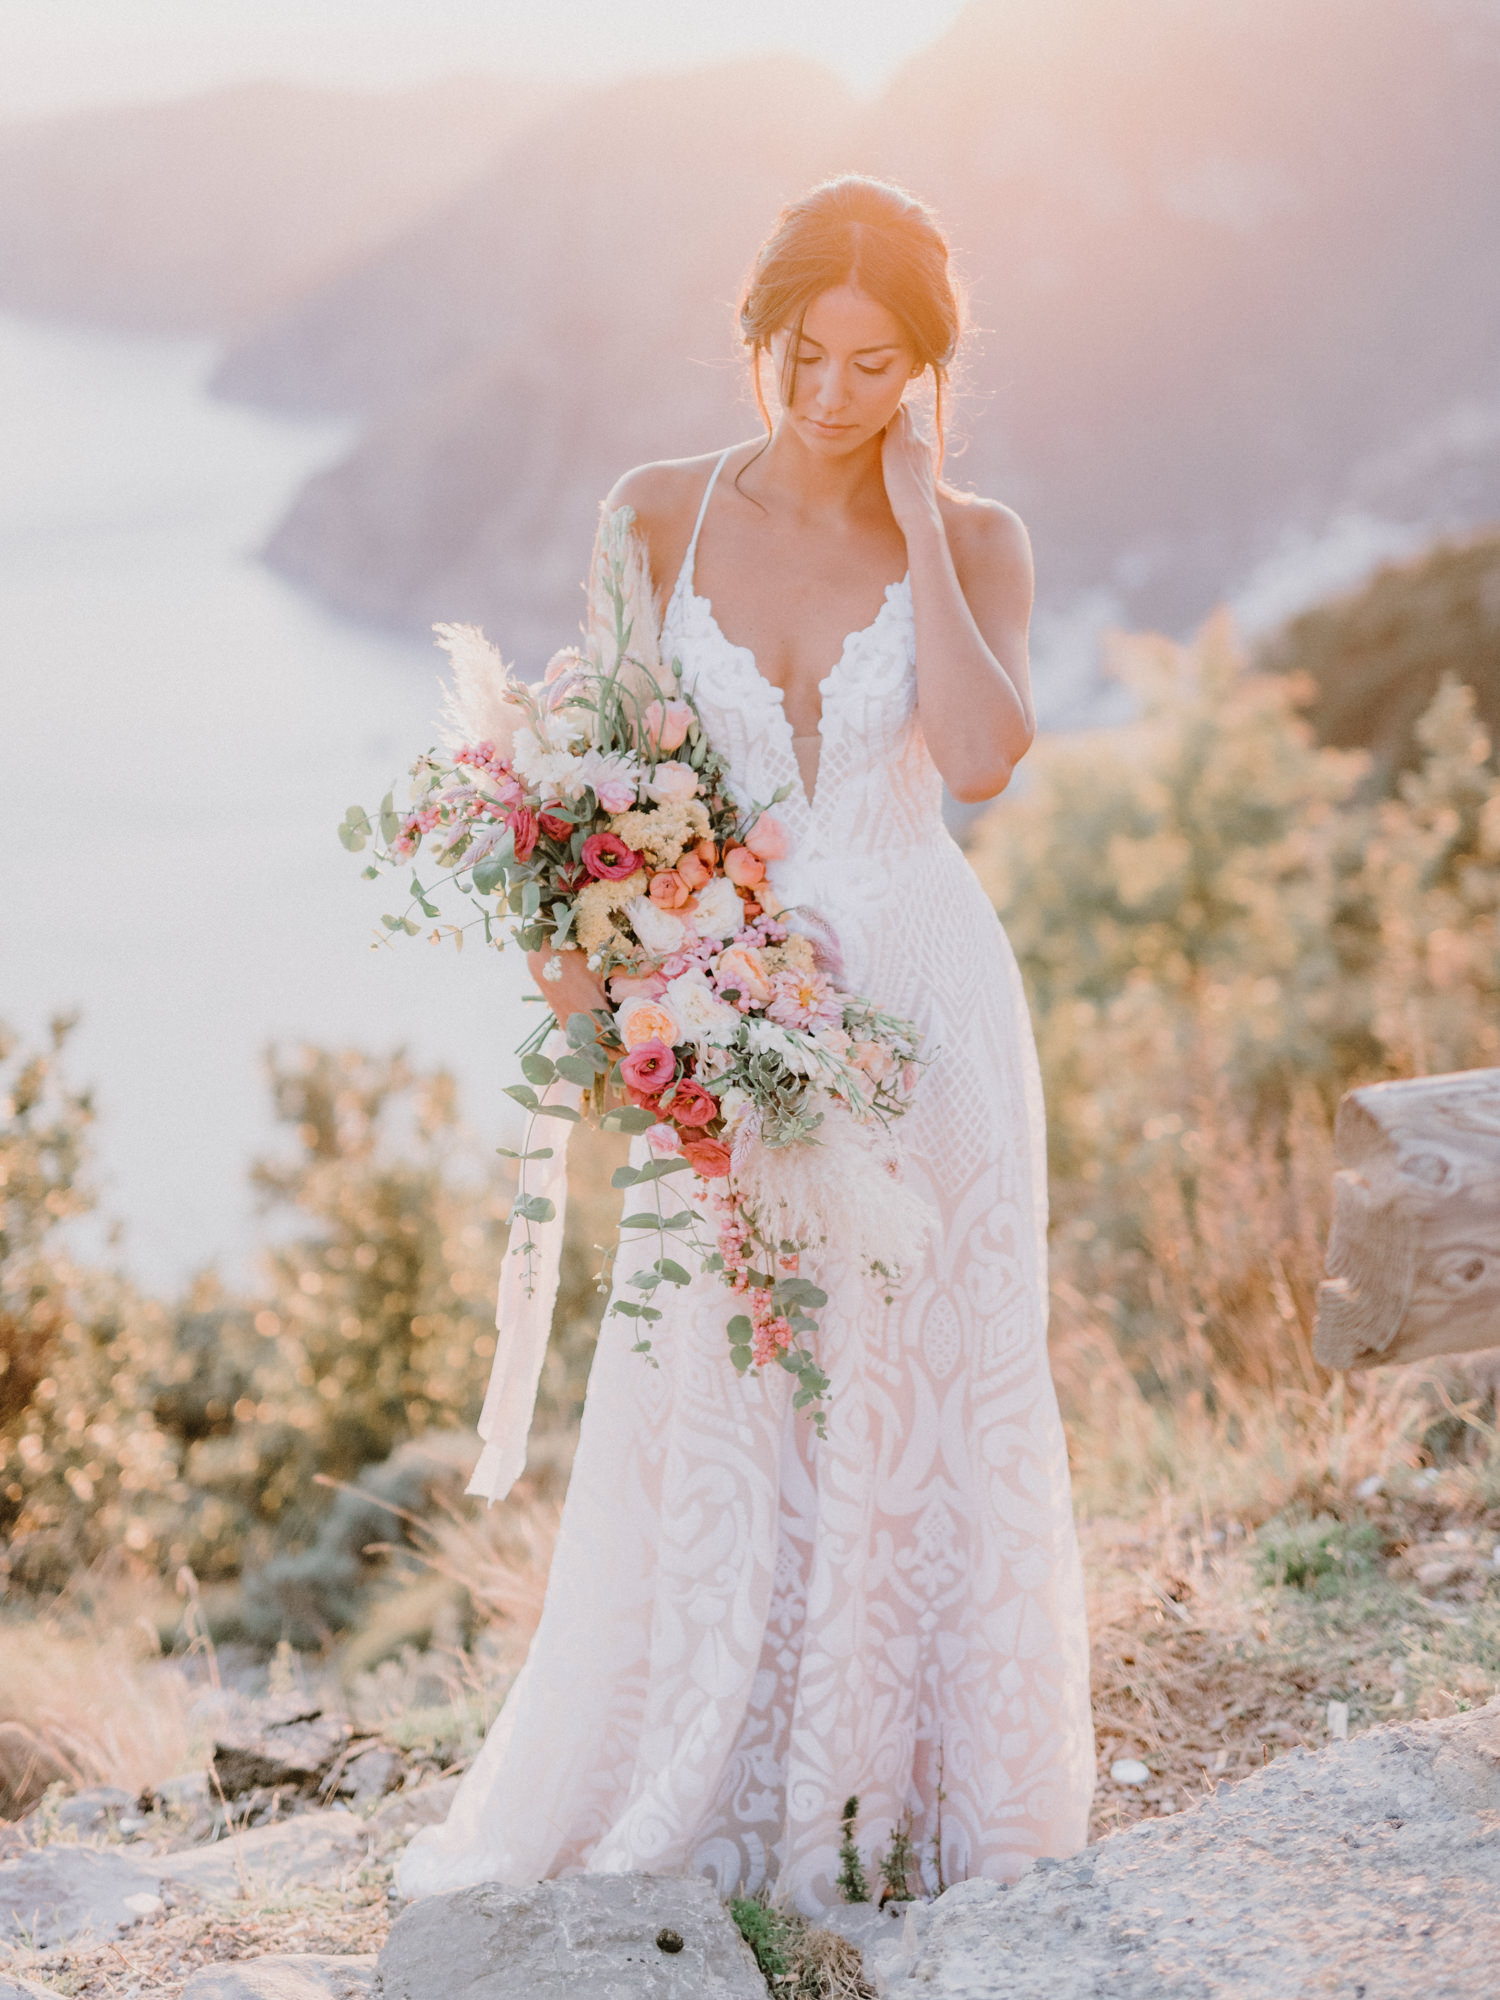 Romantic portrait of bride with lace dress and cascading bouquet - photo by Gianluca Adovasio Photography